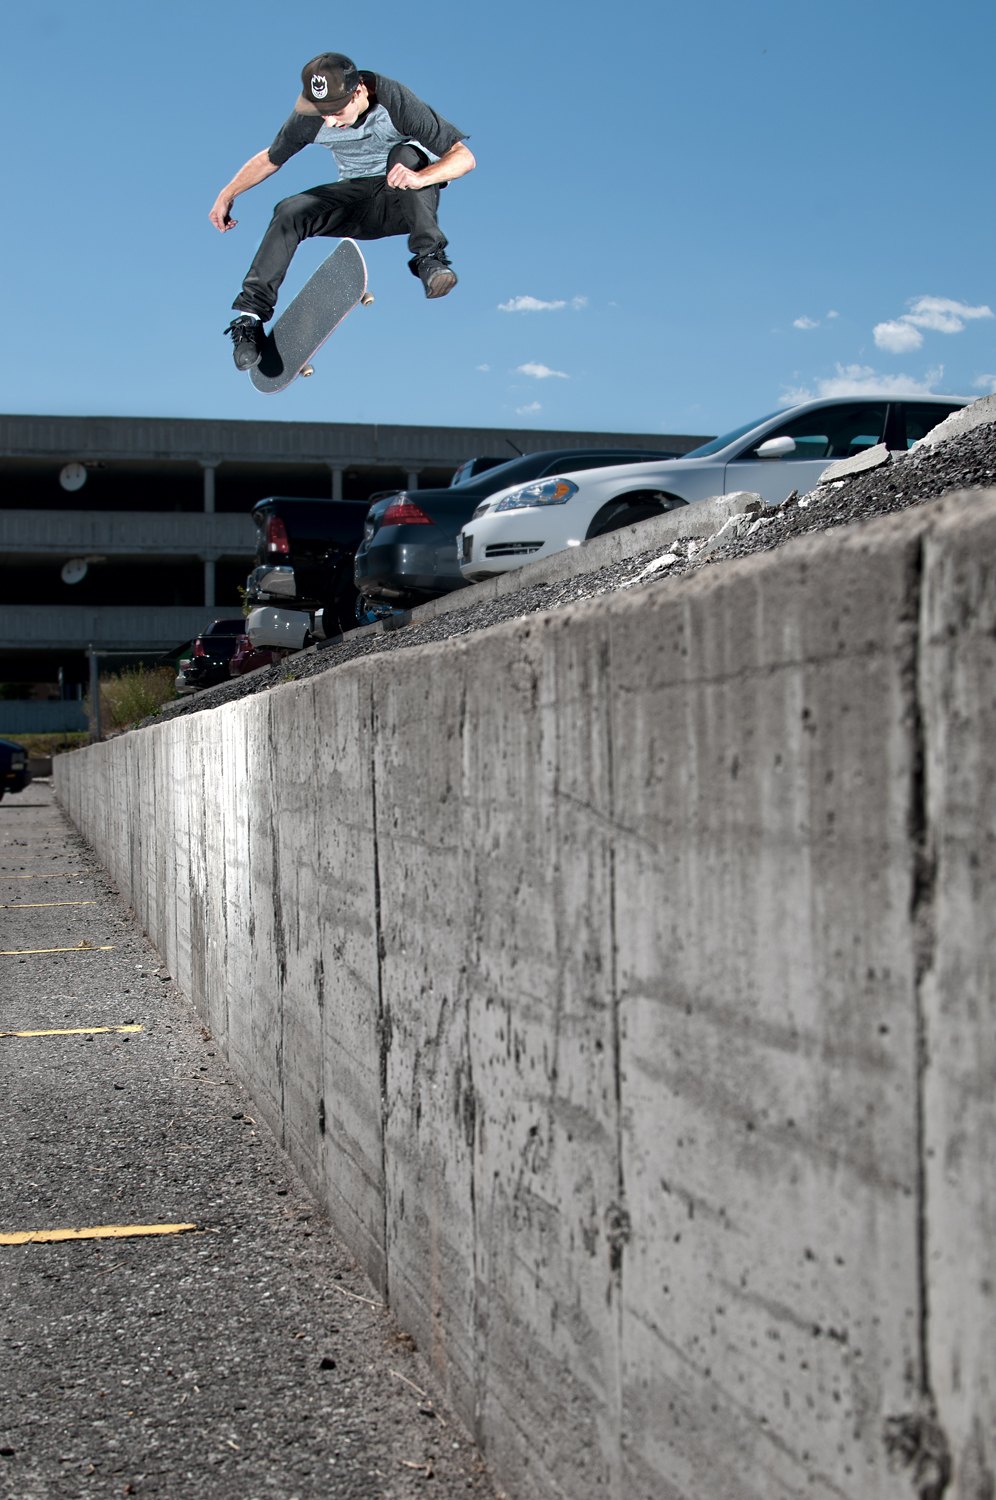 Will Marshall, 360 Flip, Ottawa, ON 2012